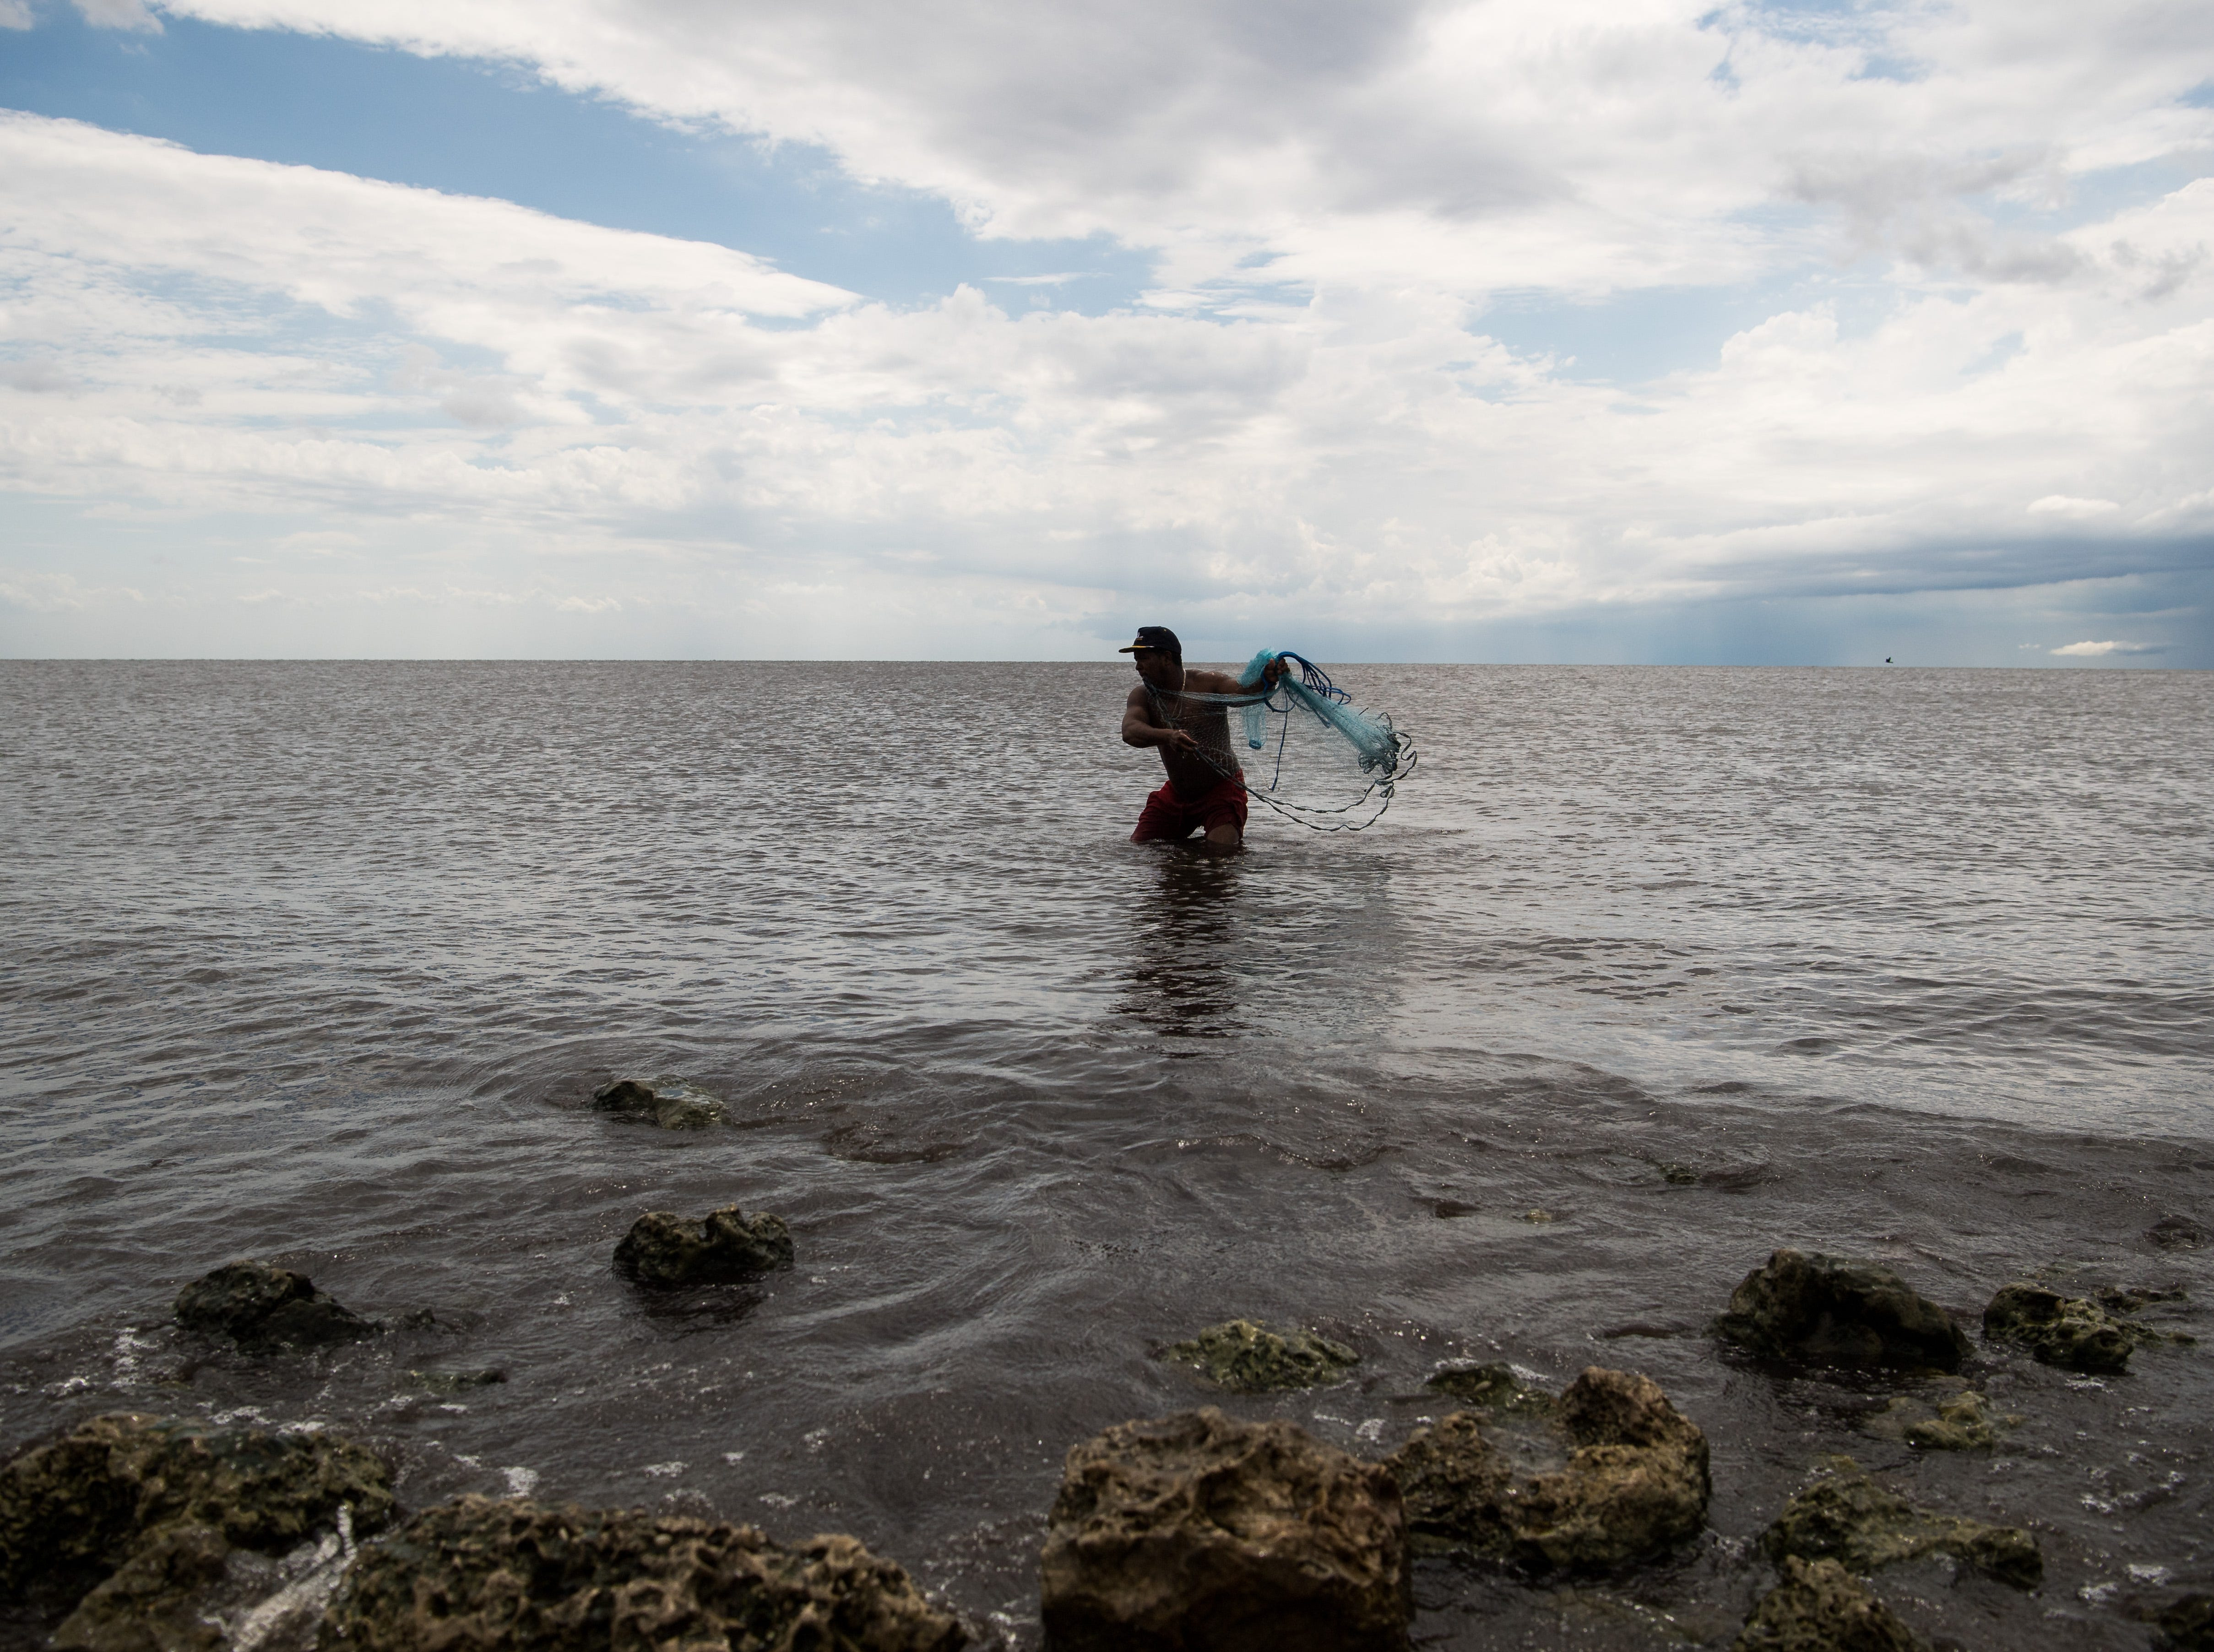 """Douglas Cruz, of West Palm Beach, casts for tilapia in the shallow waters of Lake Okeechobee on Tuesday, May 7, 2019, at Port Mayaca. Cruz was spending the day at the lake with partner Angela Rodrigues and her daughter, Daniela Matute, 3. """"She's autistic,"""" Rodrigues said of her daughter, adding that being at the lake is more calming for her than the ocean."""